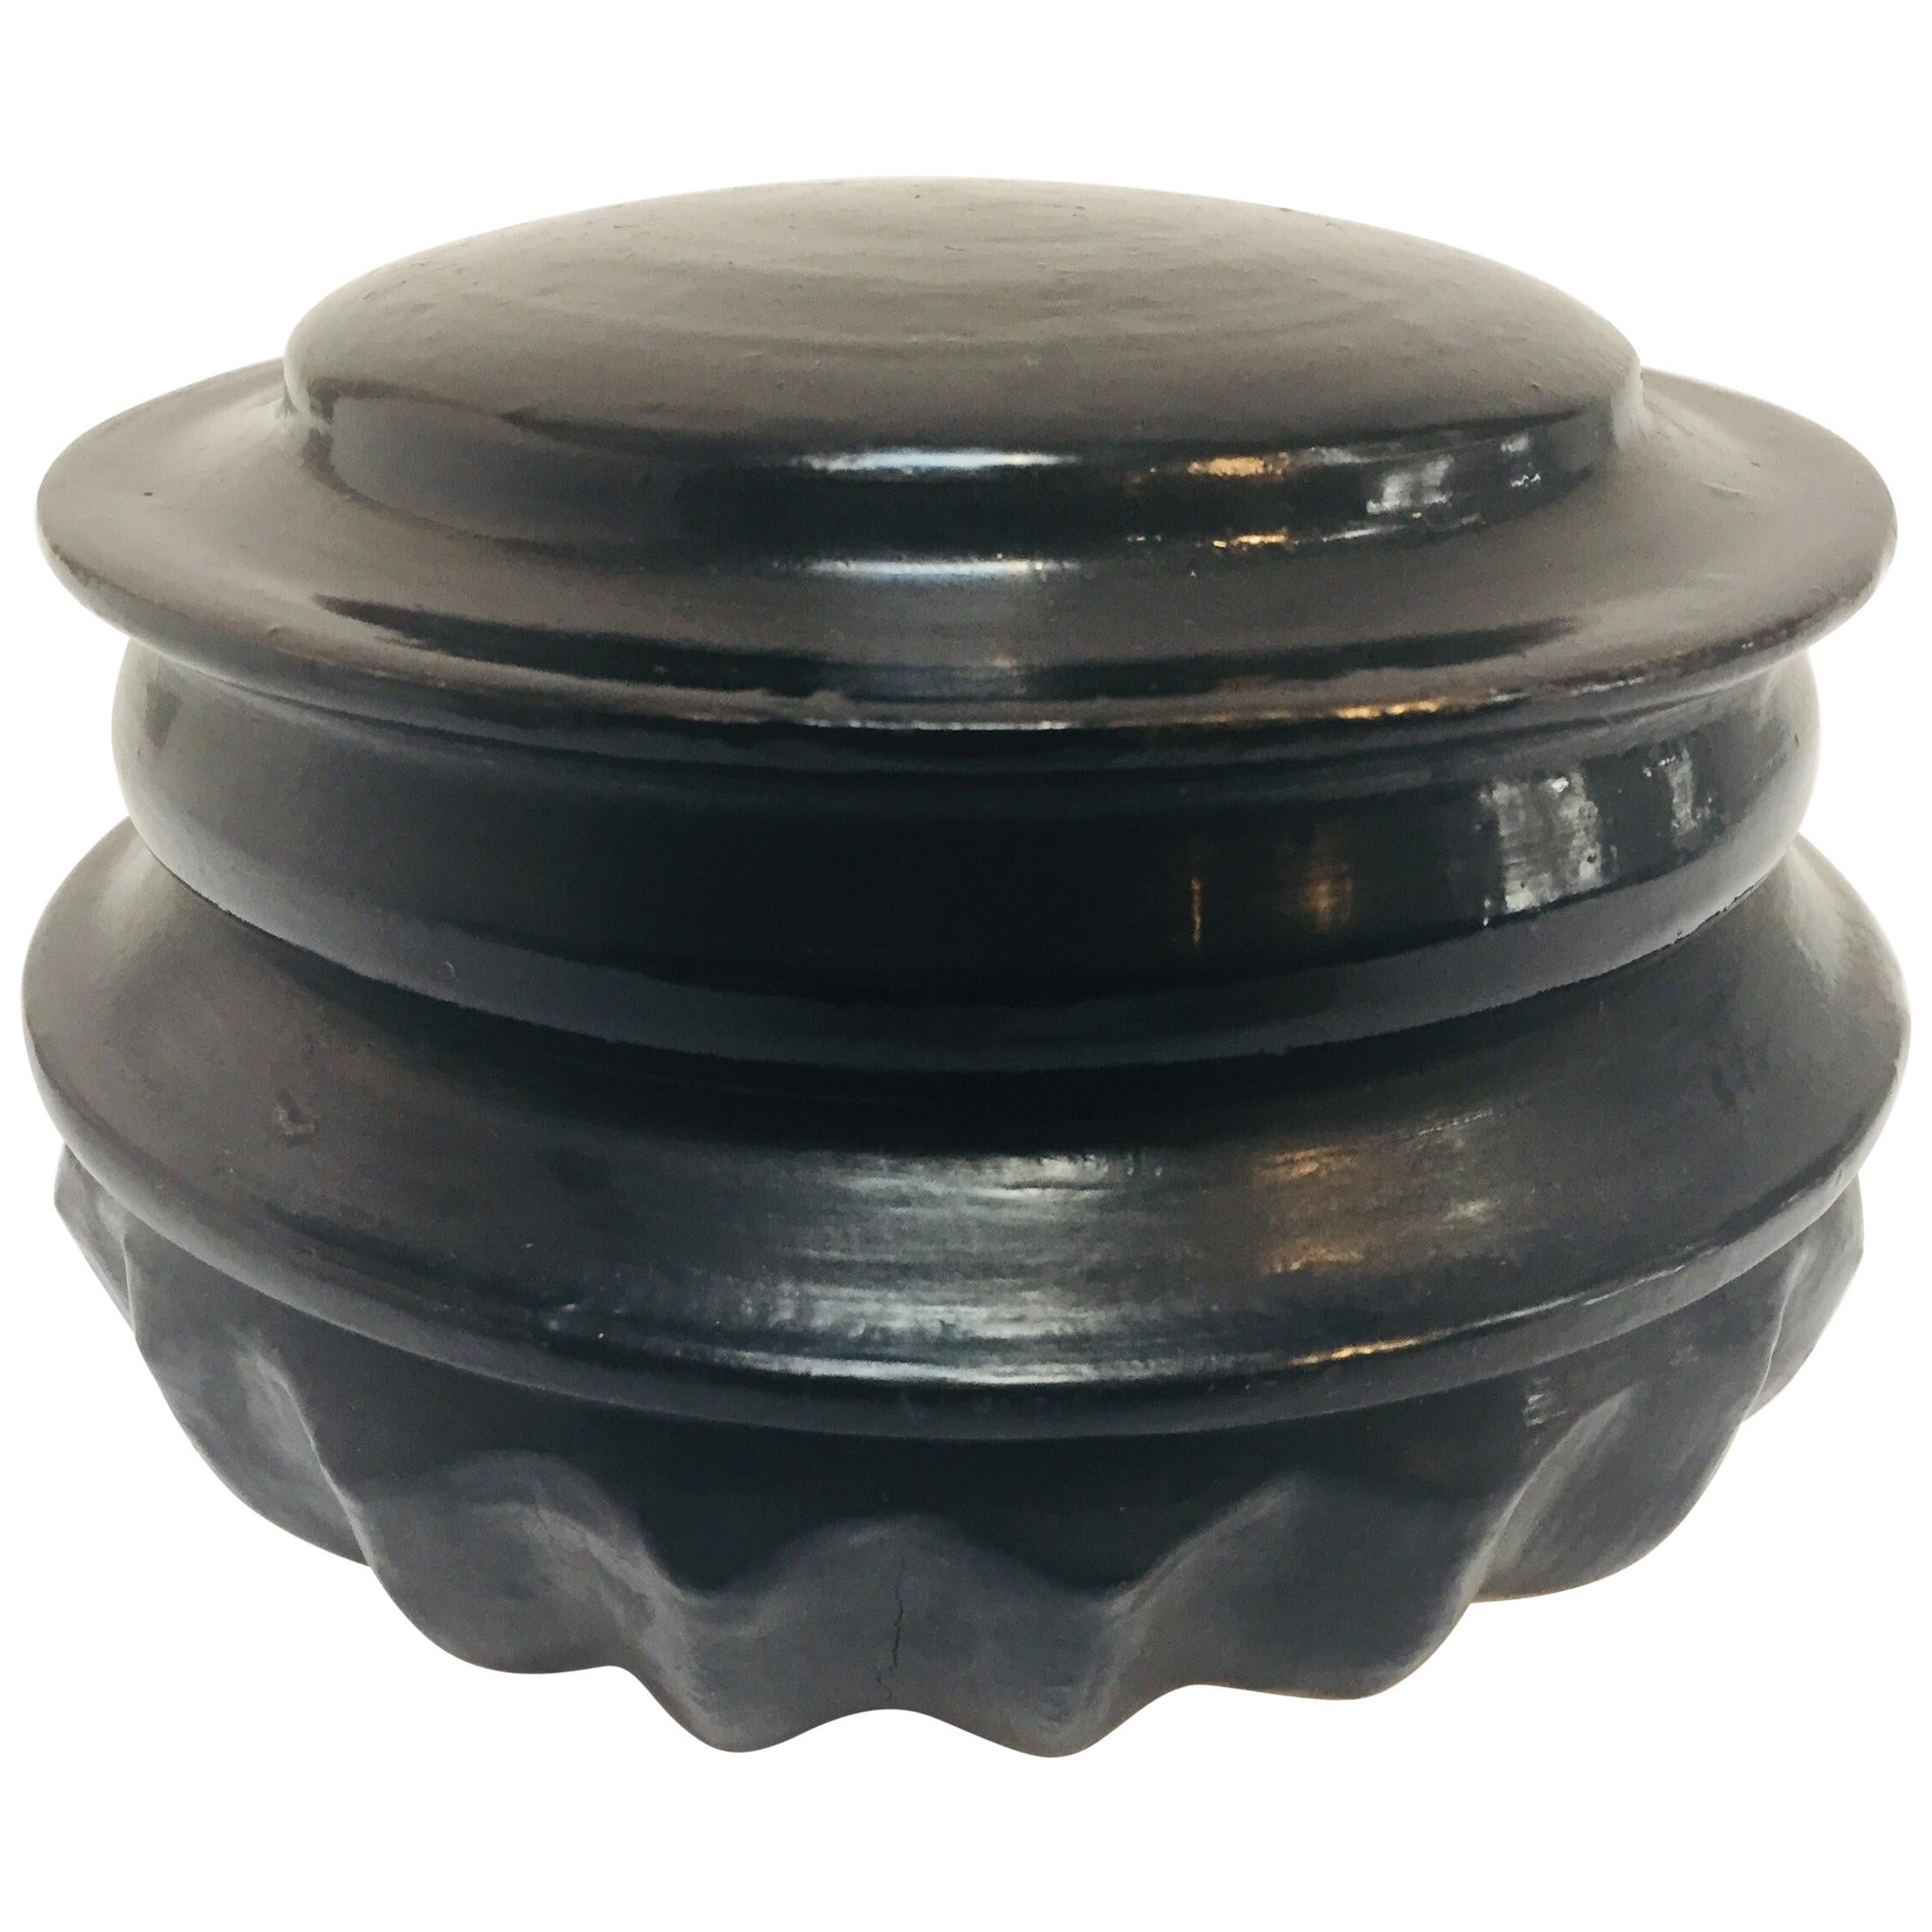 Burmese Black and Red Round Lacquer Offering Vessel Urn Box